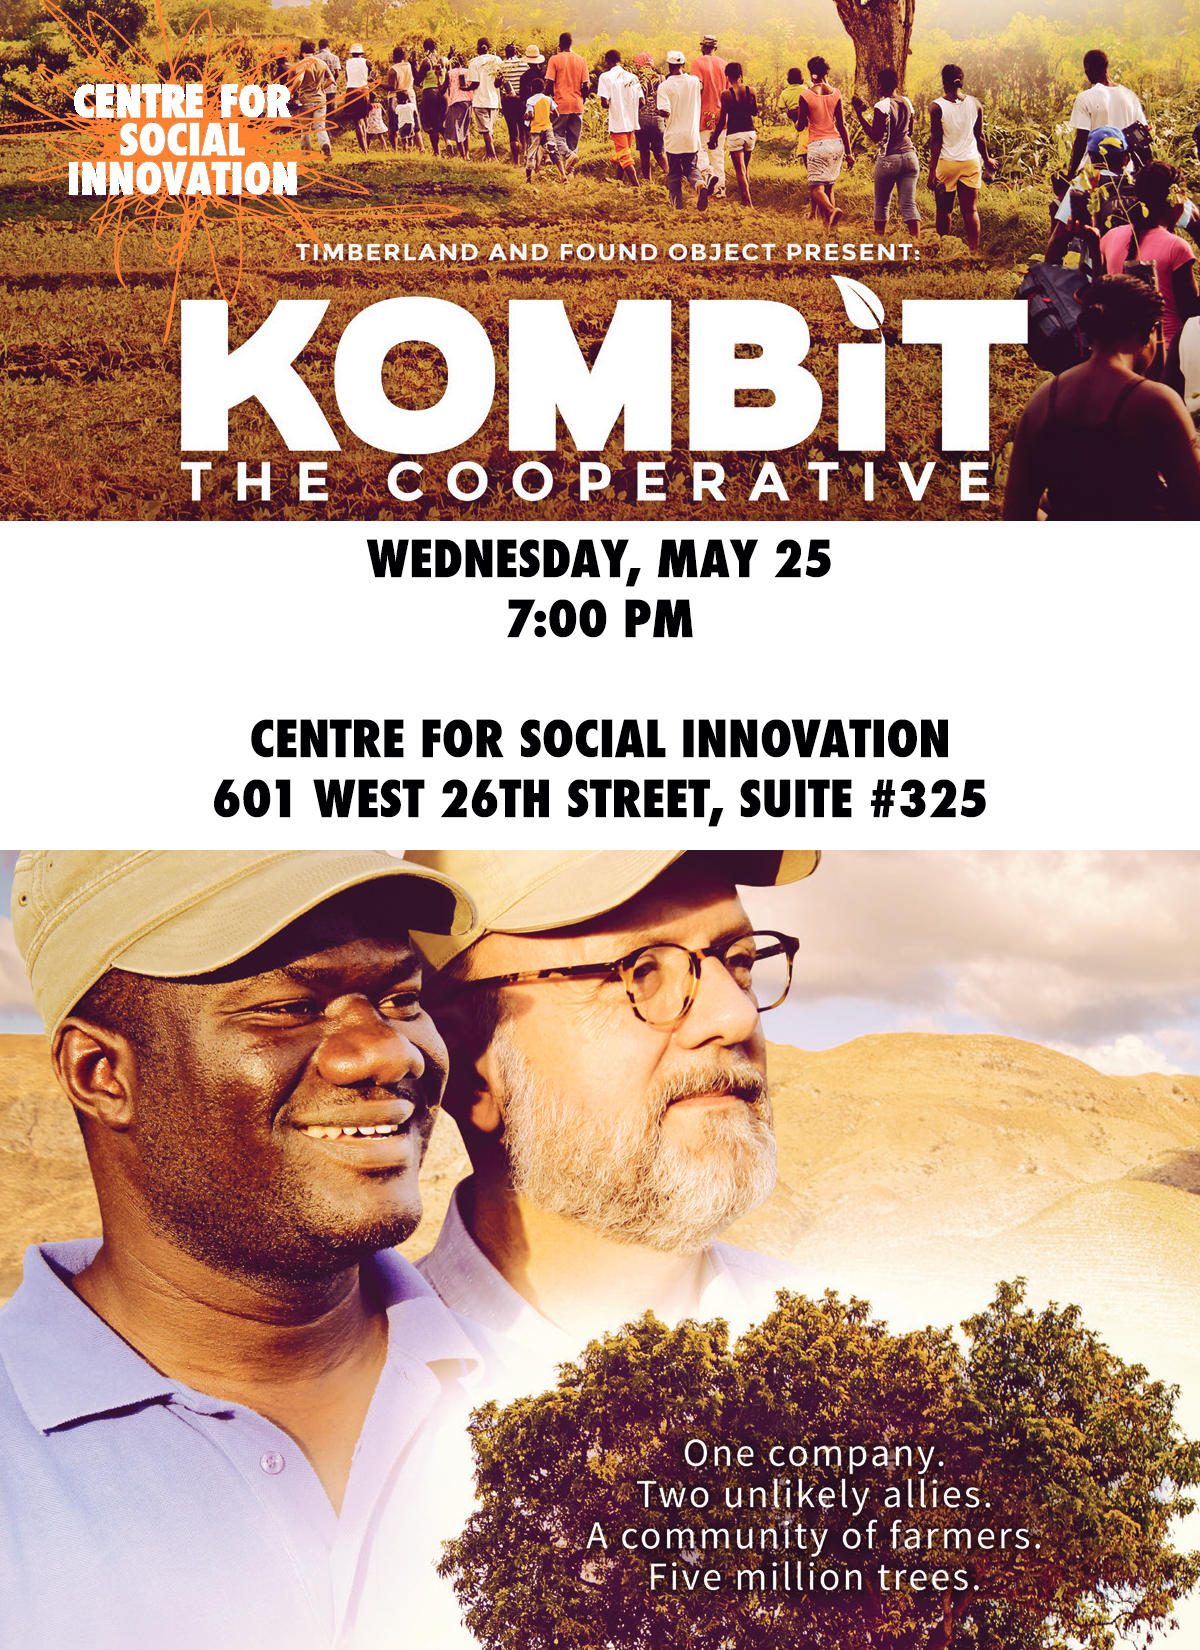 You are cordially invited to attend a   Screening of KOMBIT: The Cooperative